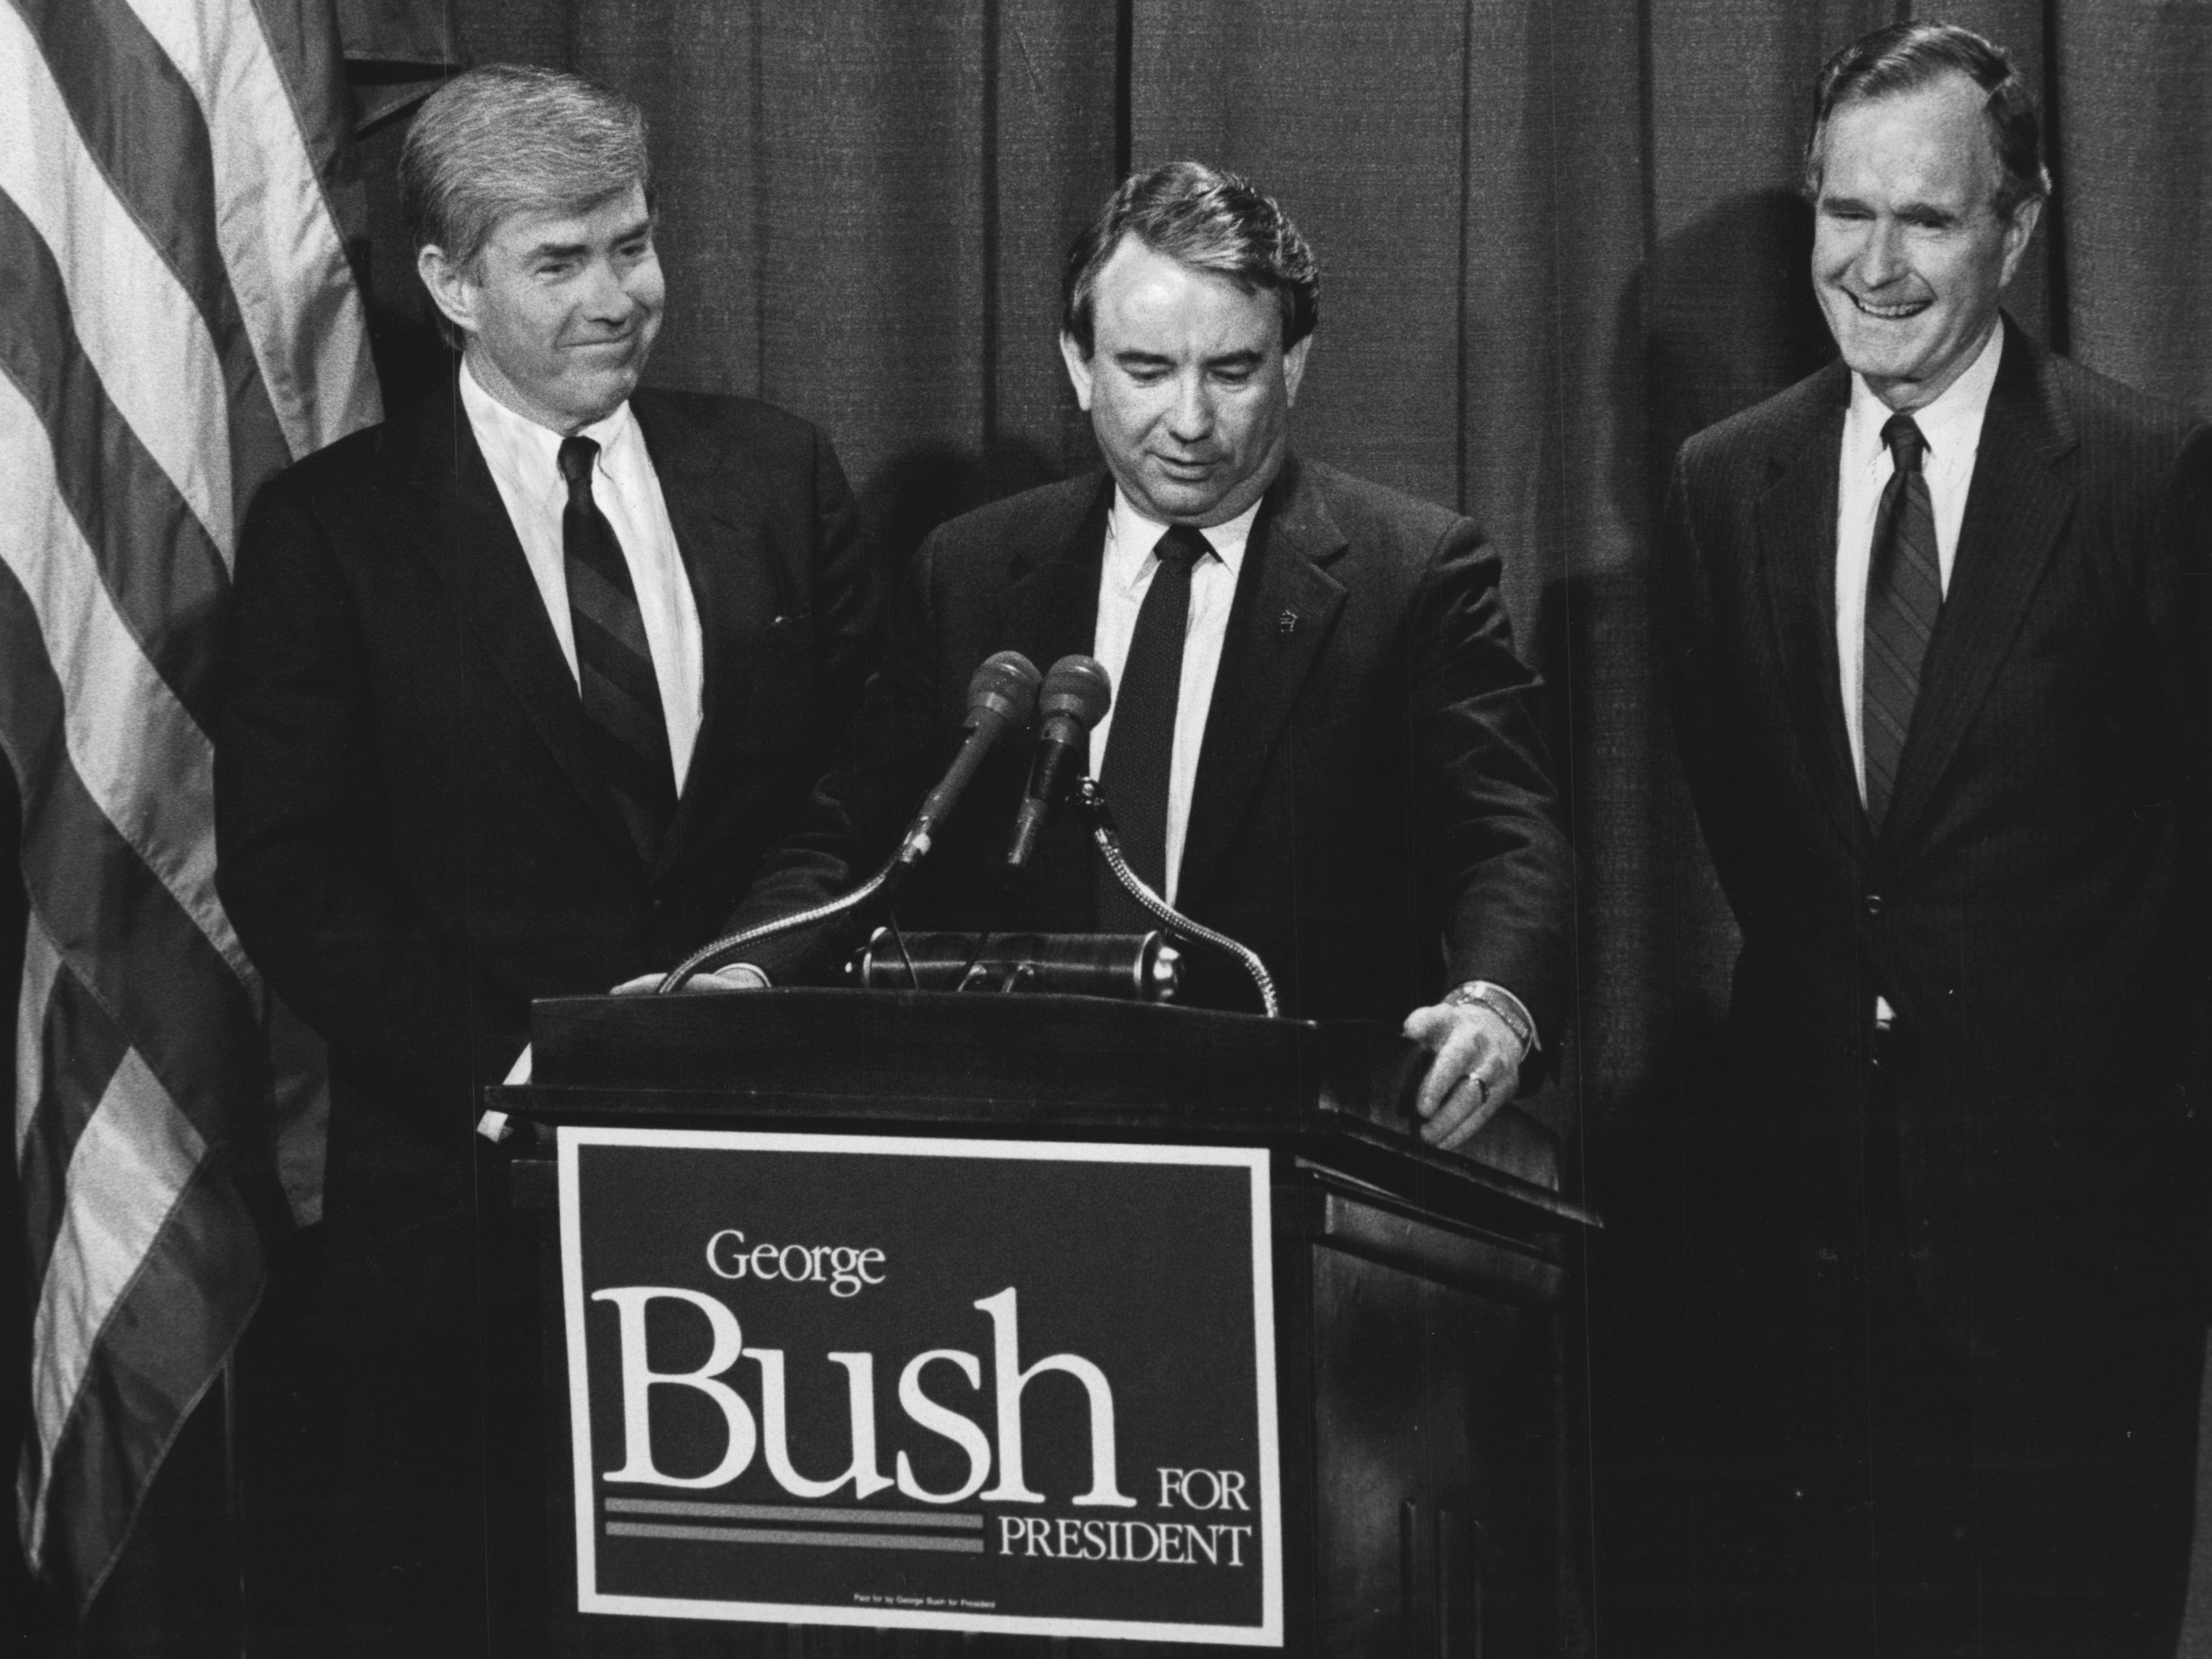 Vice President George Bush (right) smiles along with U.S. Rep. Jack Kemp (left) of New York as they listen to Wisconsin Gov. Tommy Thompson during a joint appearance in 1988 at the Pfister Hotel.